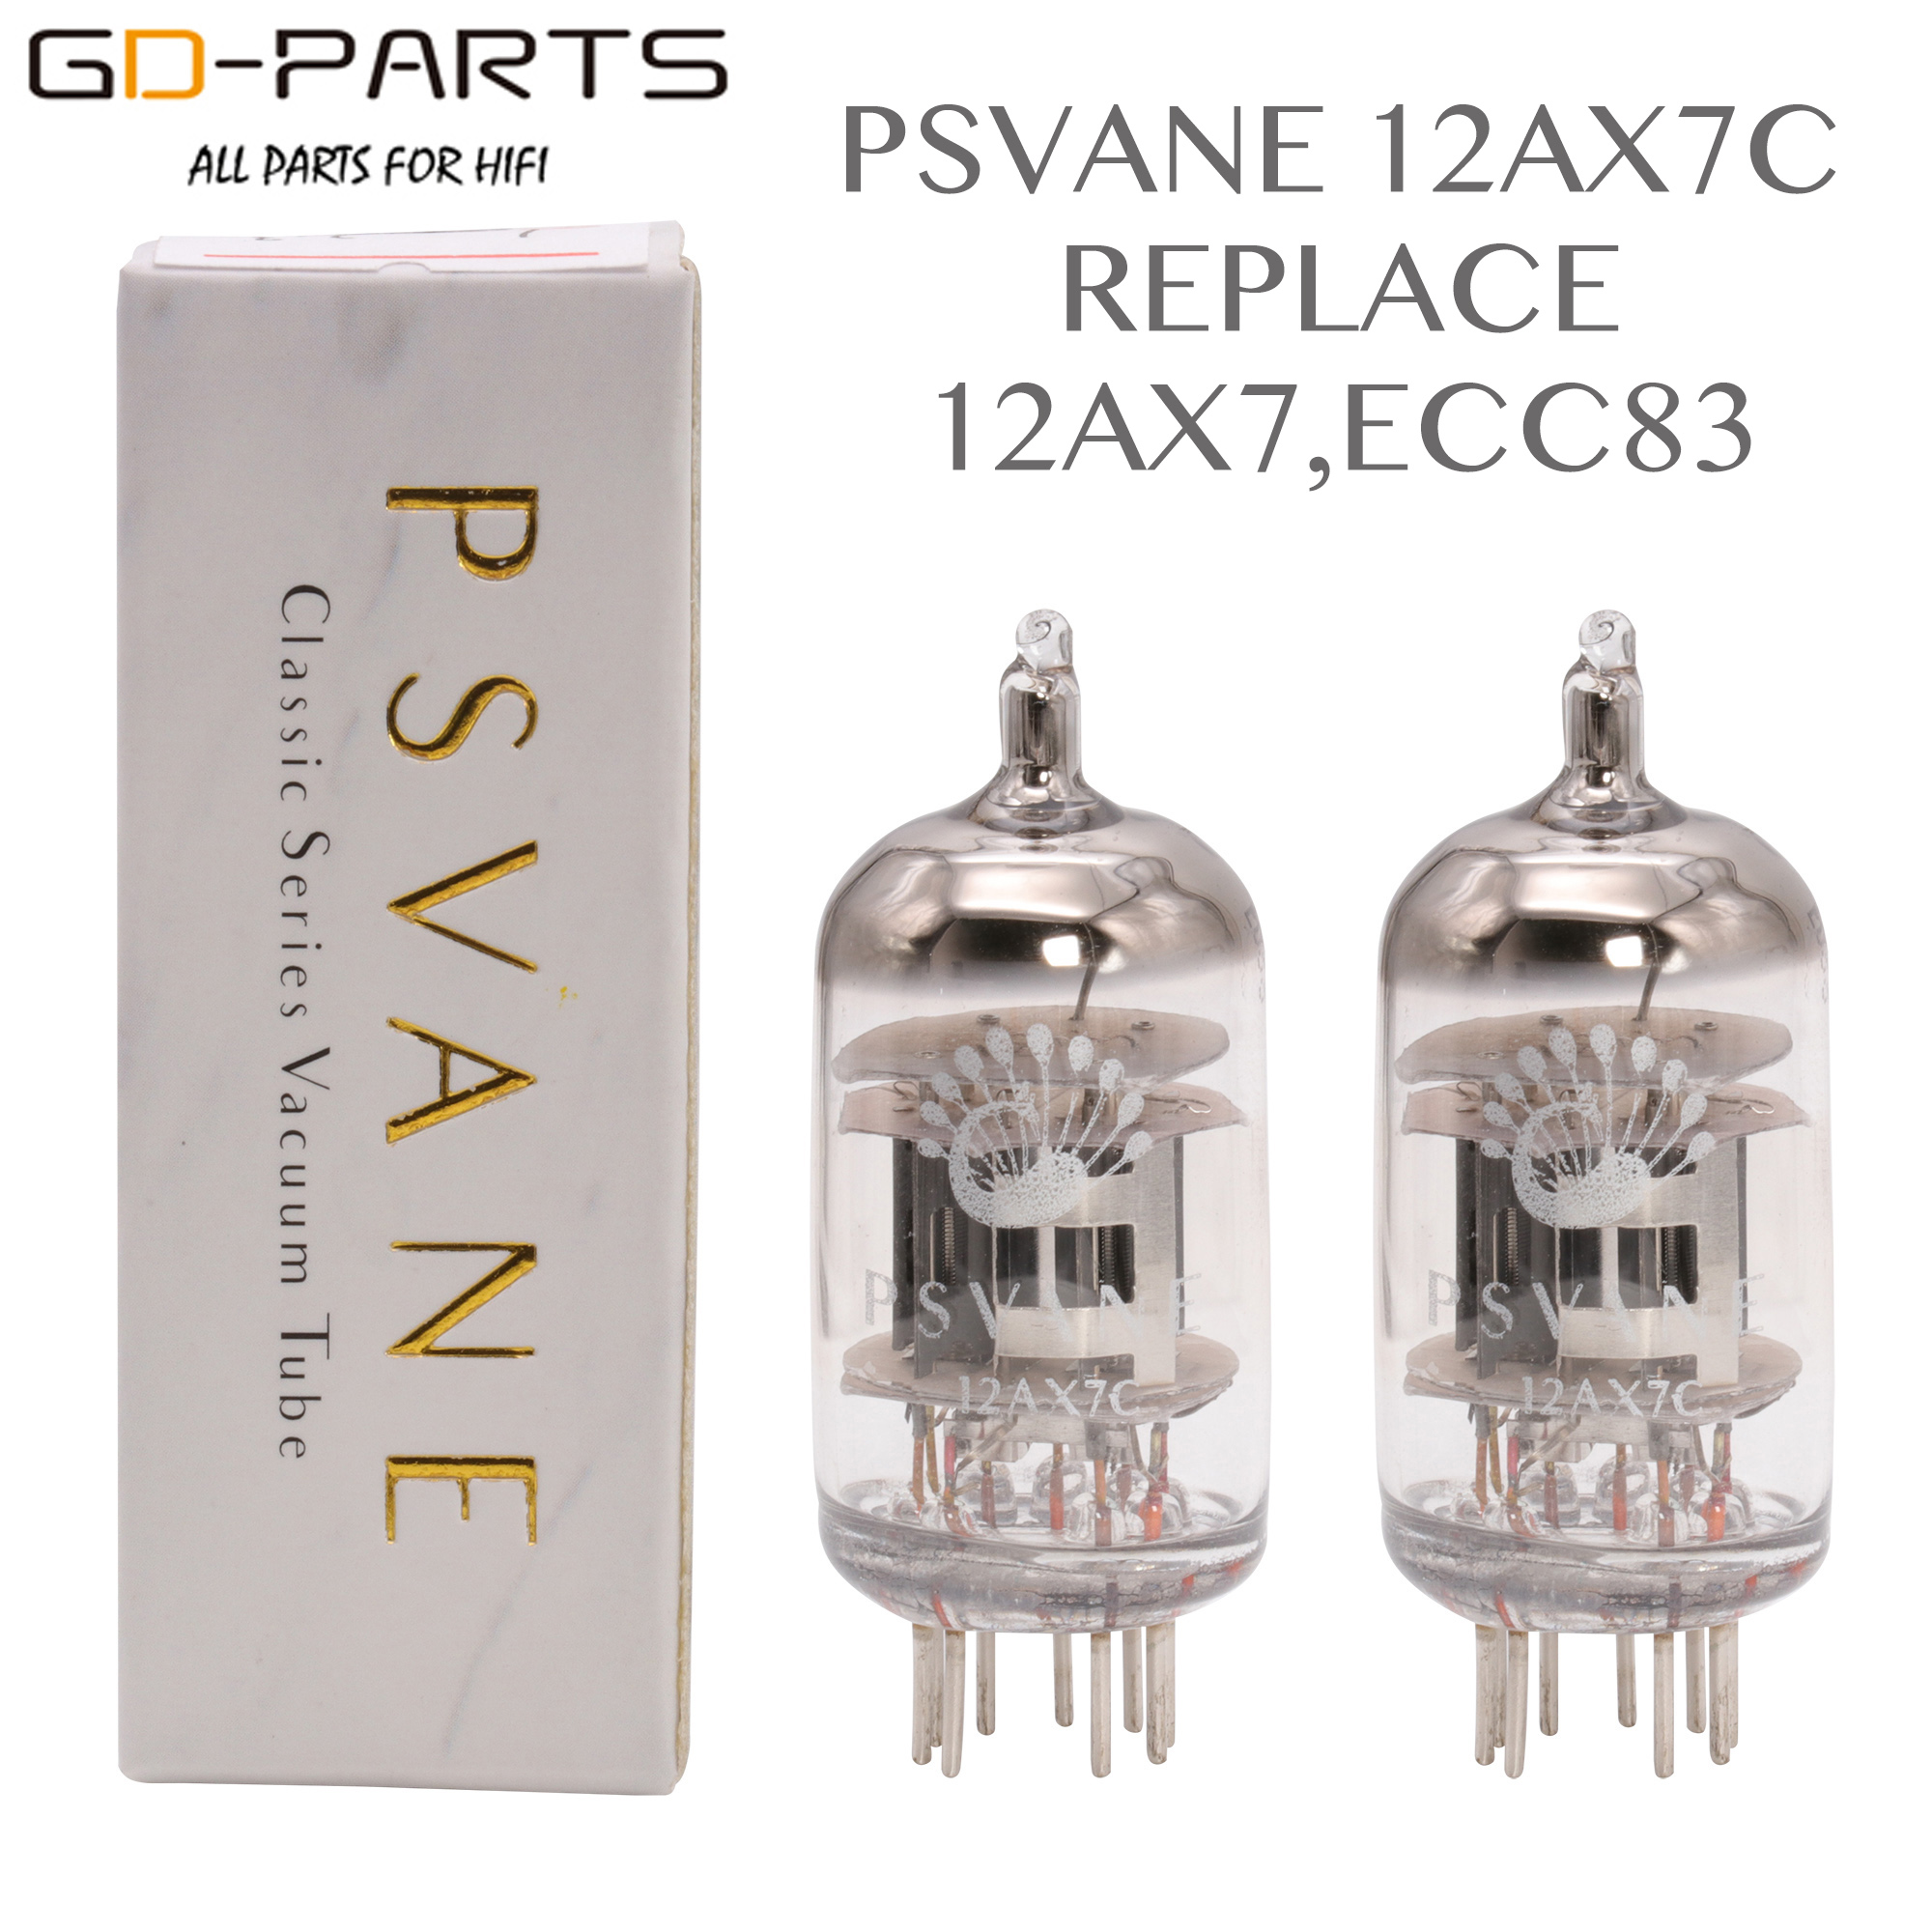 PSVANE 12AX7C Vacuum Tube Replace ECC83 For HIFI DIY Audio Headphone Speaker Vintage Tube Amplifier